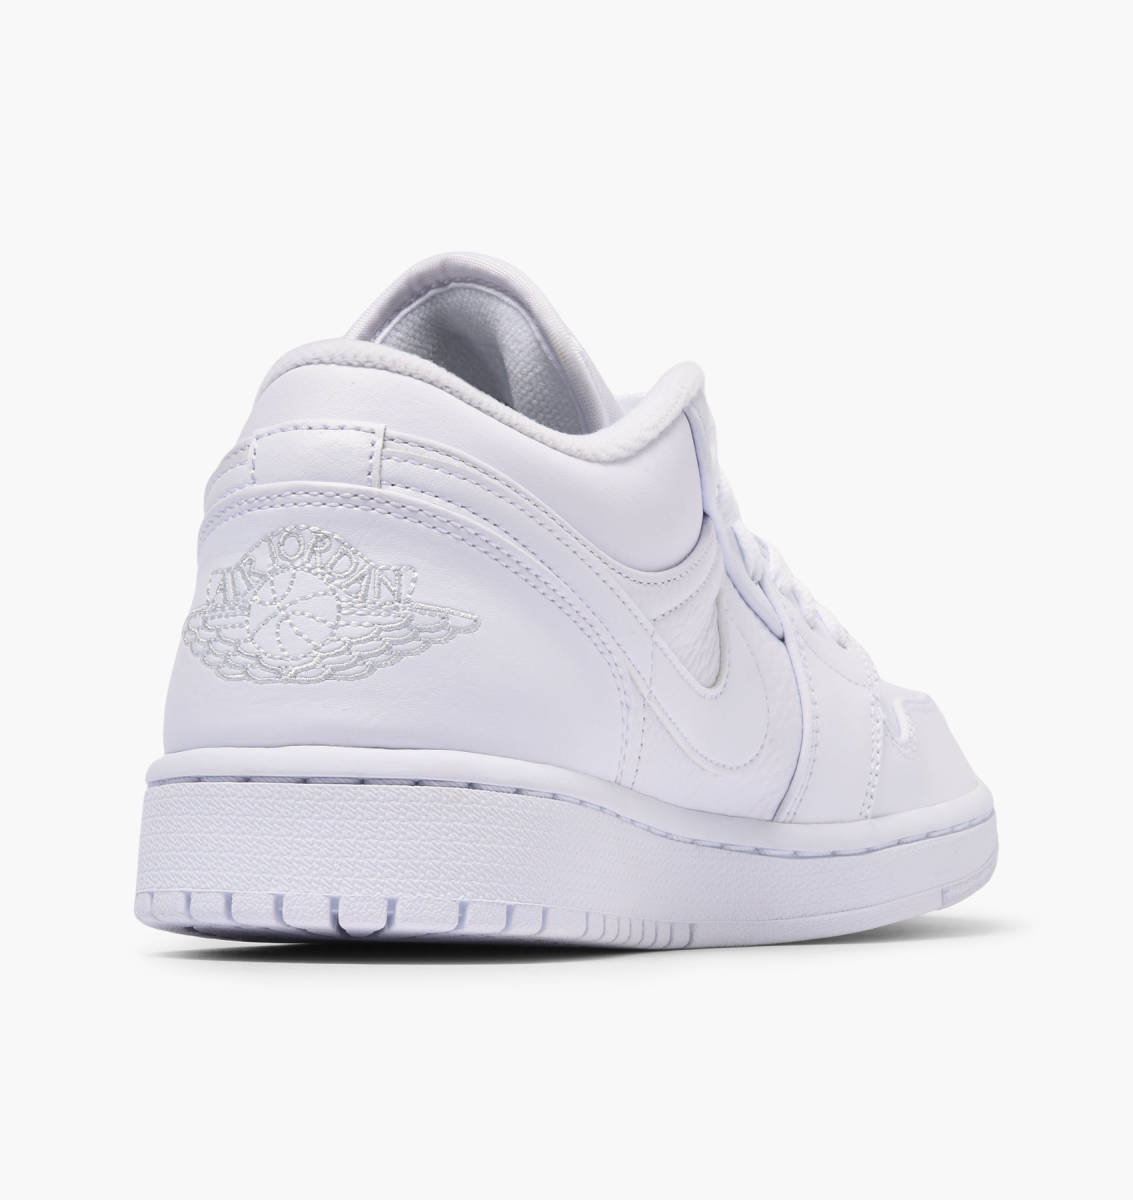 the best attitude 706f9 394b3 NIKE JORDAN Air 1 Low in weiss - 553558-111   everysize